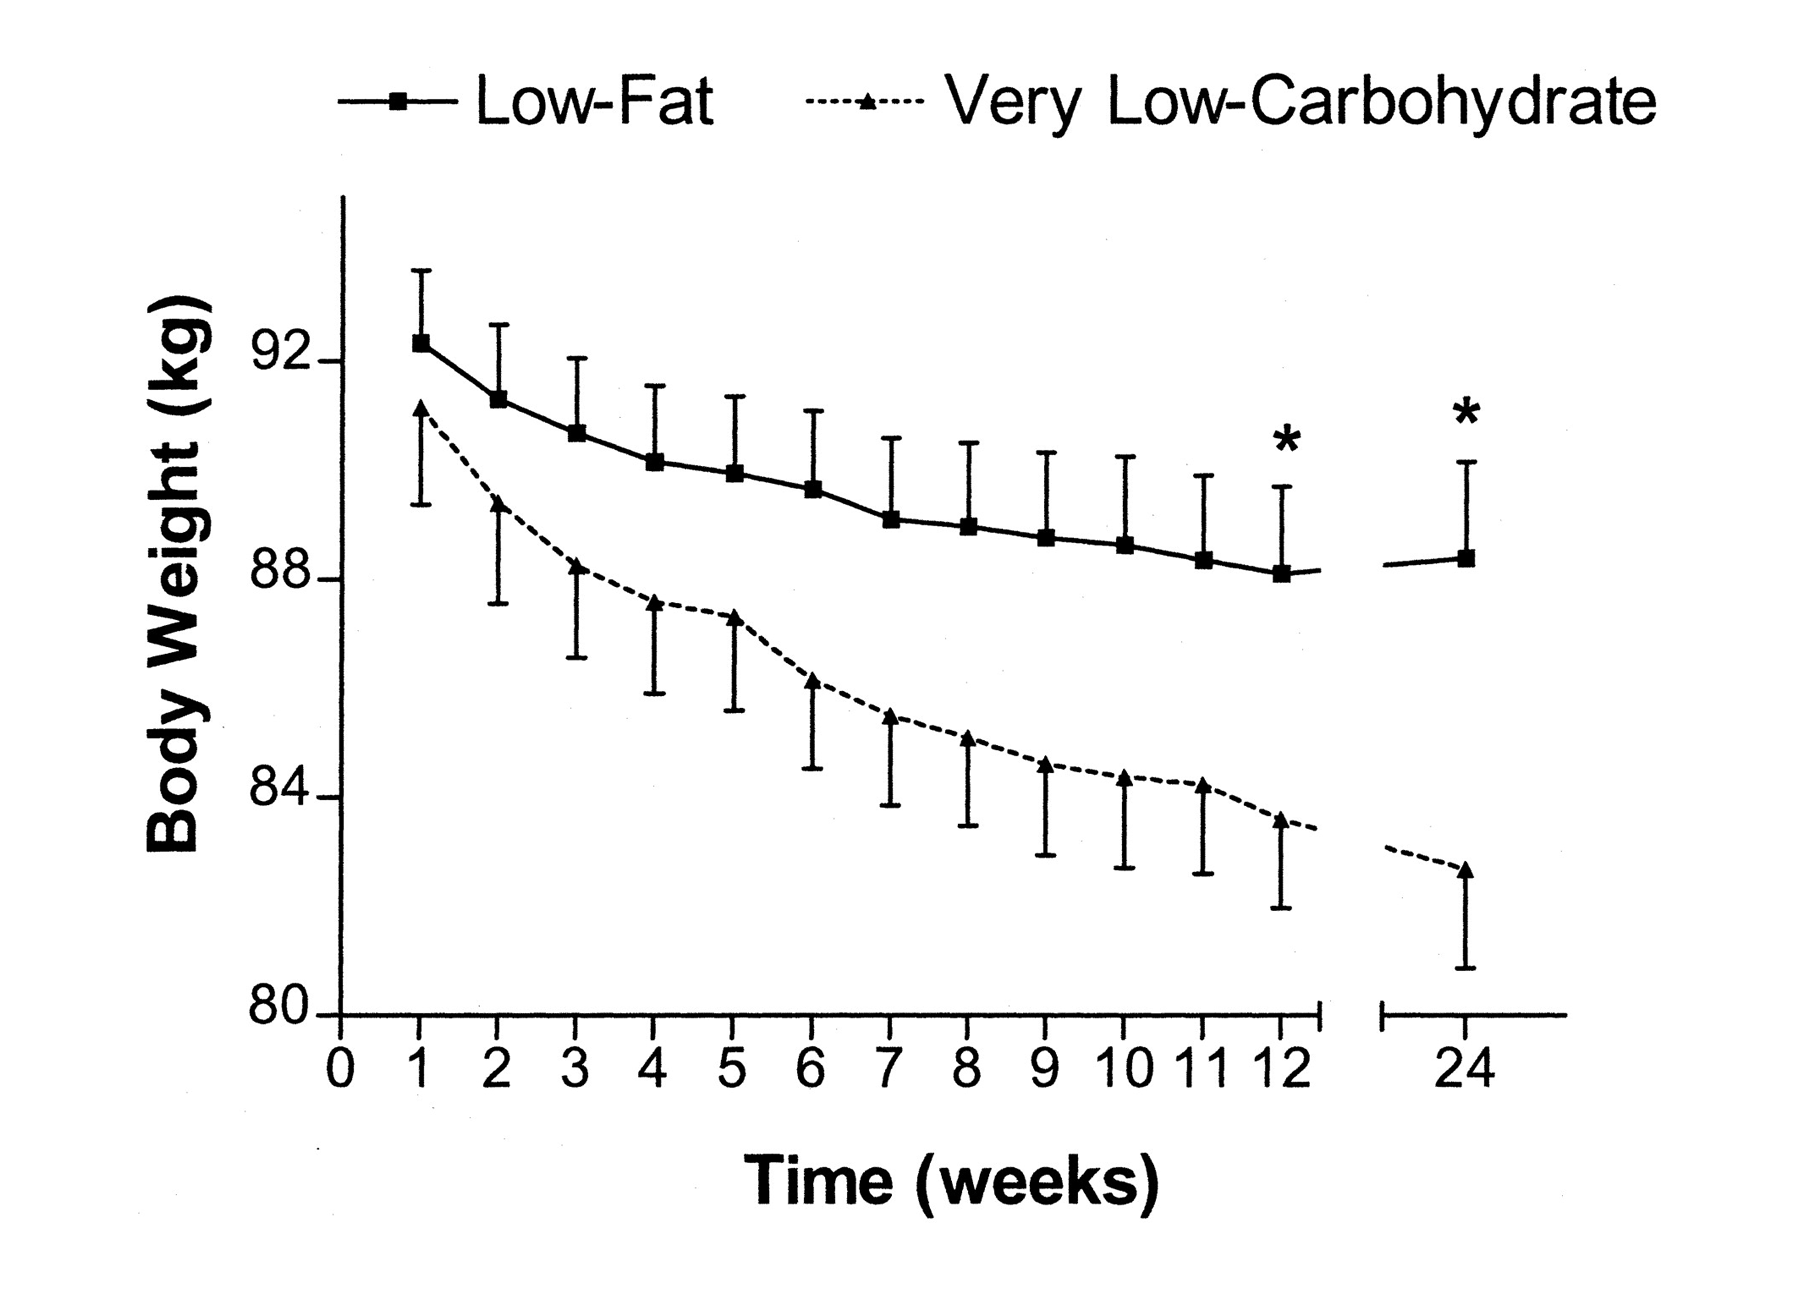 The Lowcarb Group Is Eating Until Fullness, While The Lowfat Group Is  Calorie Restricted And Hungry